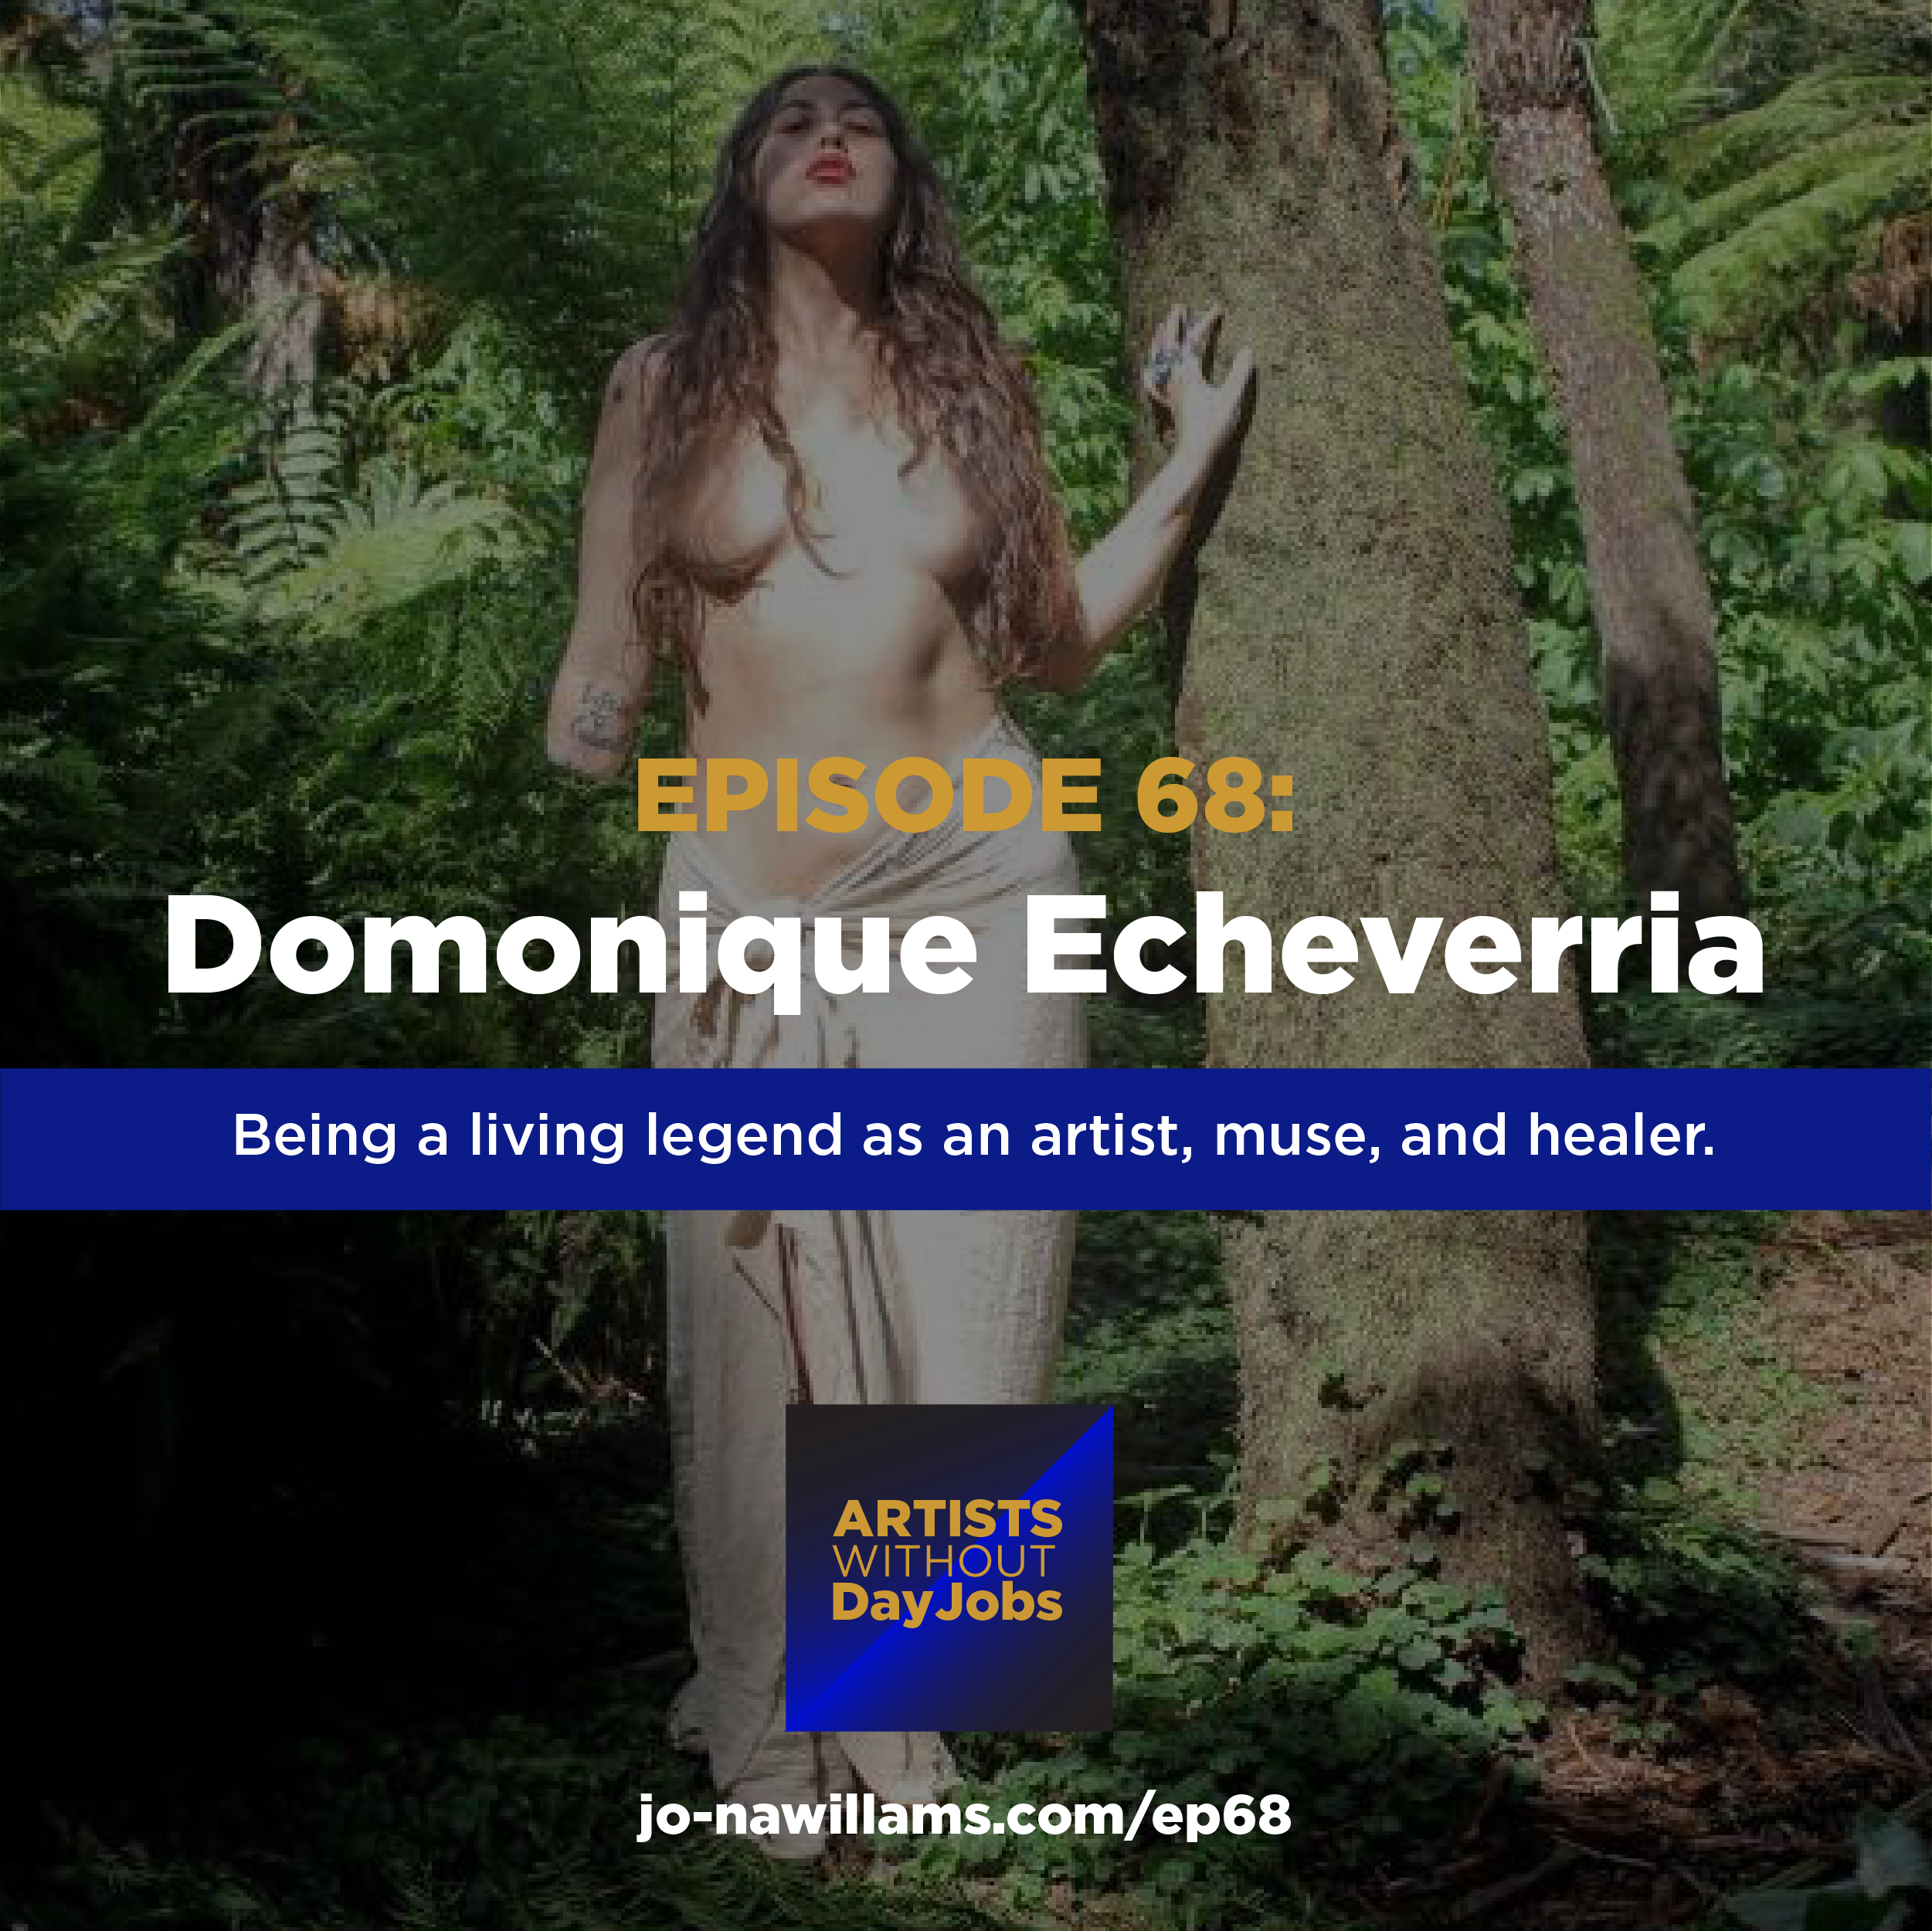 Ep 68: Being a living legend as an artist, muse, and healer w/ Domonique Echeverria